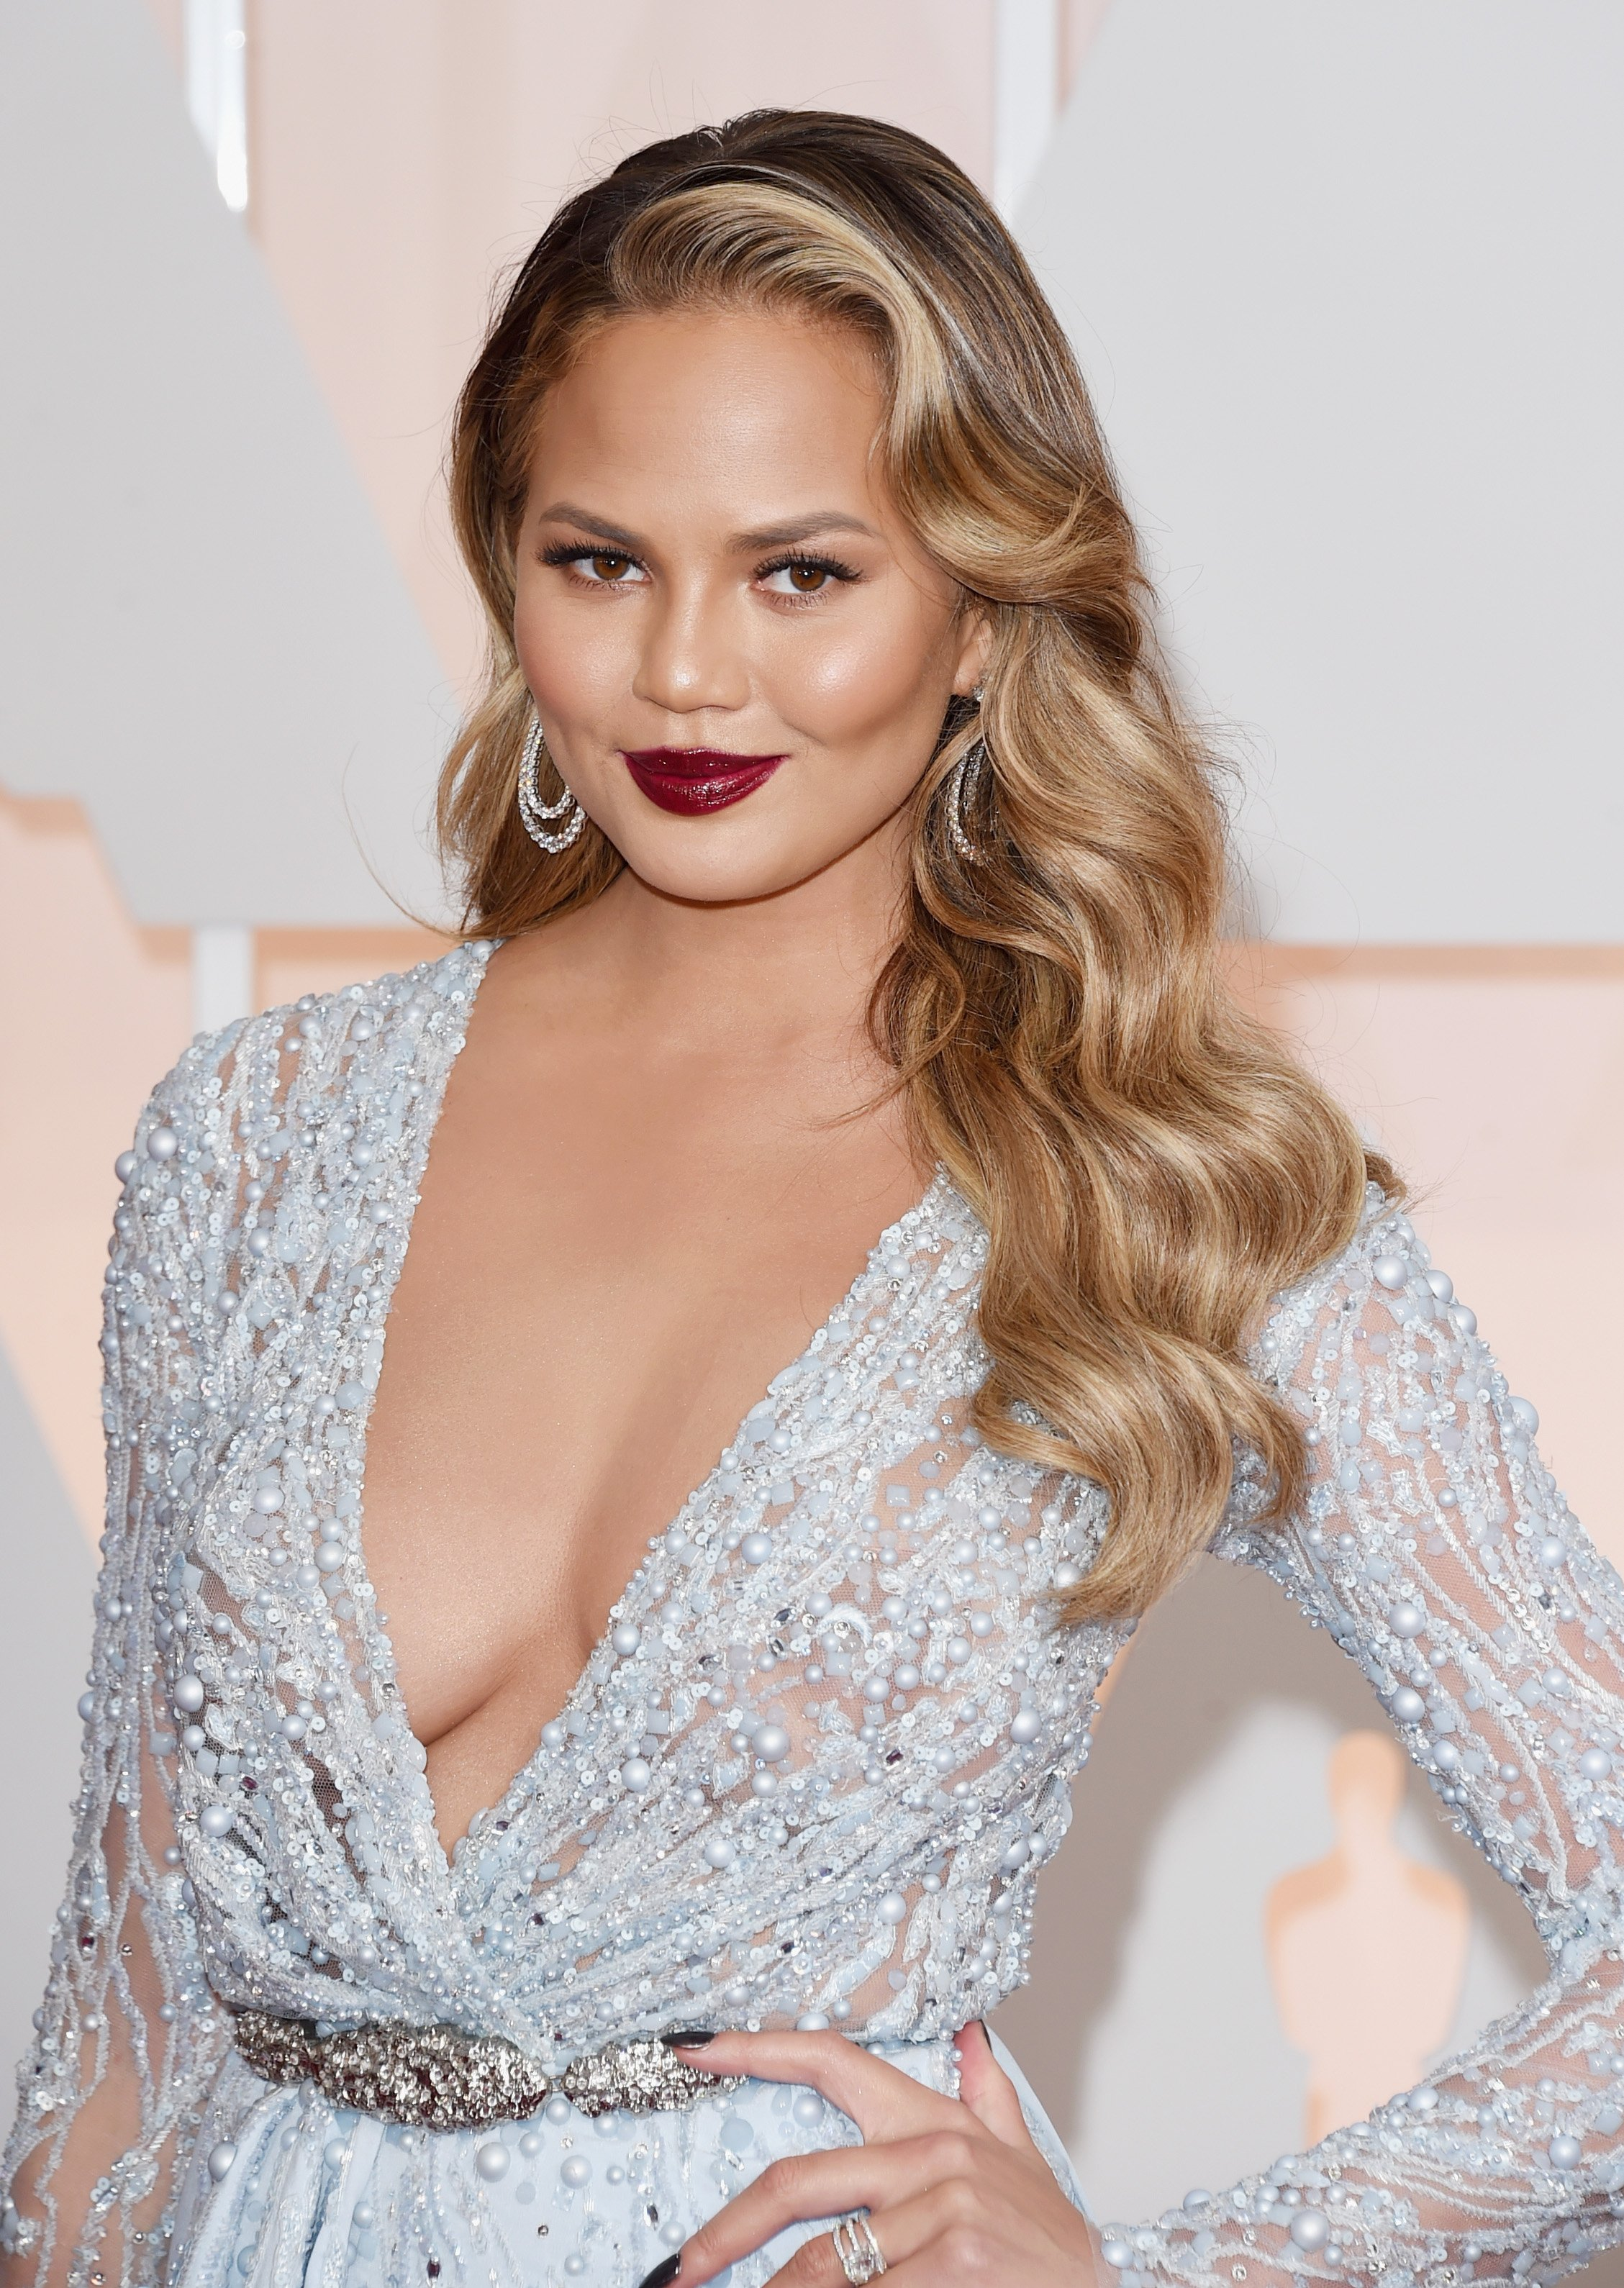 Chrissy Teigen at the 87th Annual Academy Awards at Hollywood & Highland Center on February 22, 2015 in Hollywood, California.| Source: Getty Images